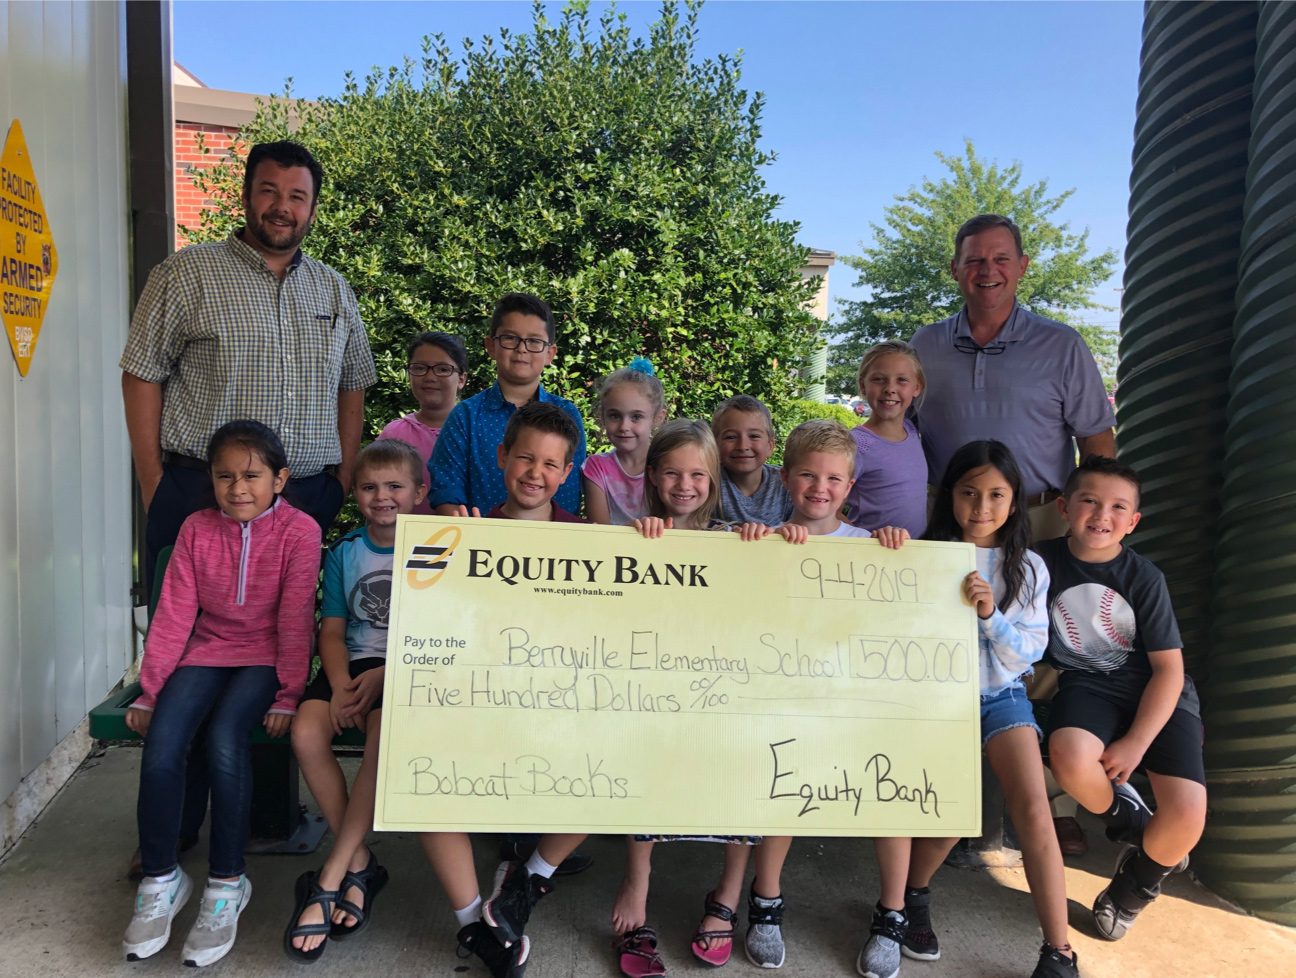 Group of school kids with teachers holding a large Equity Bank donation check.